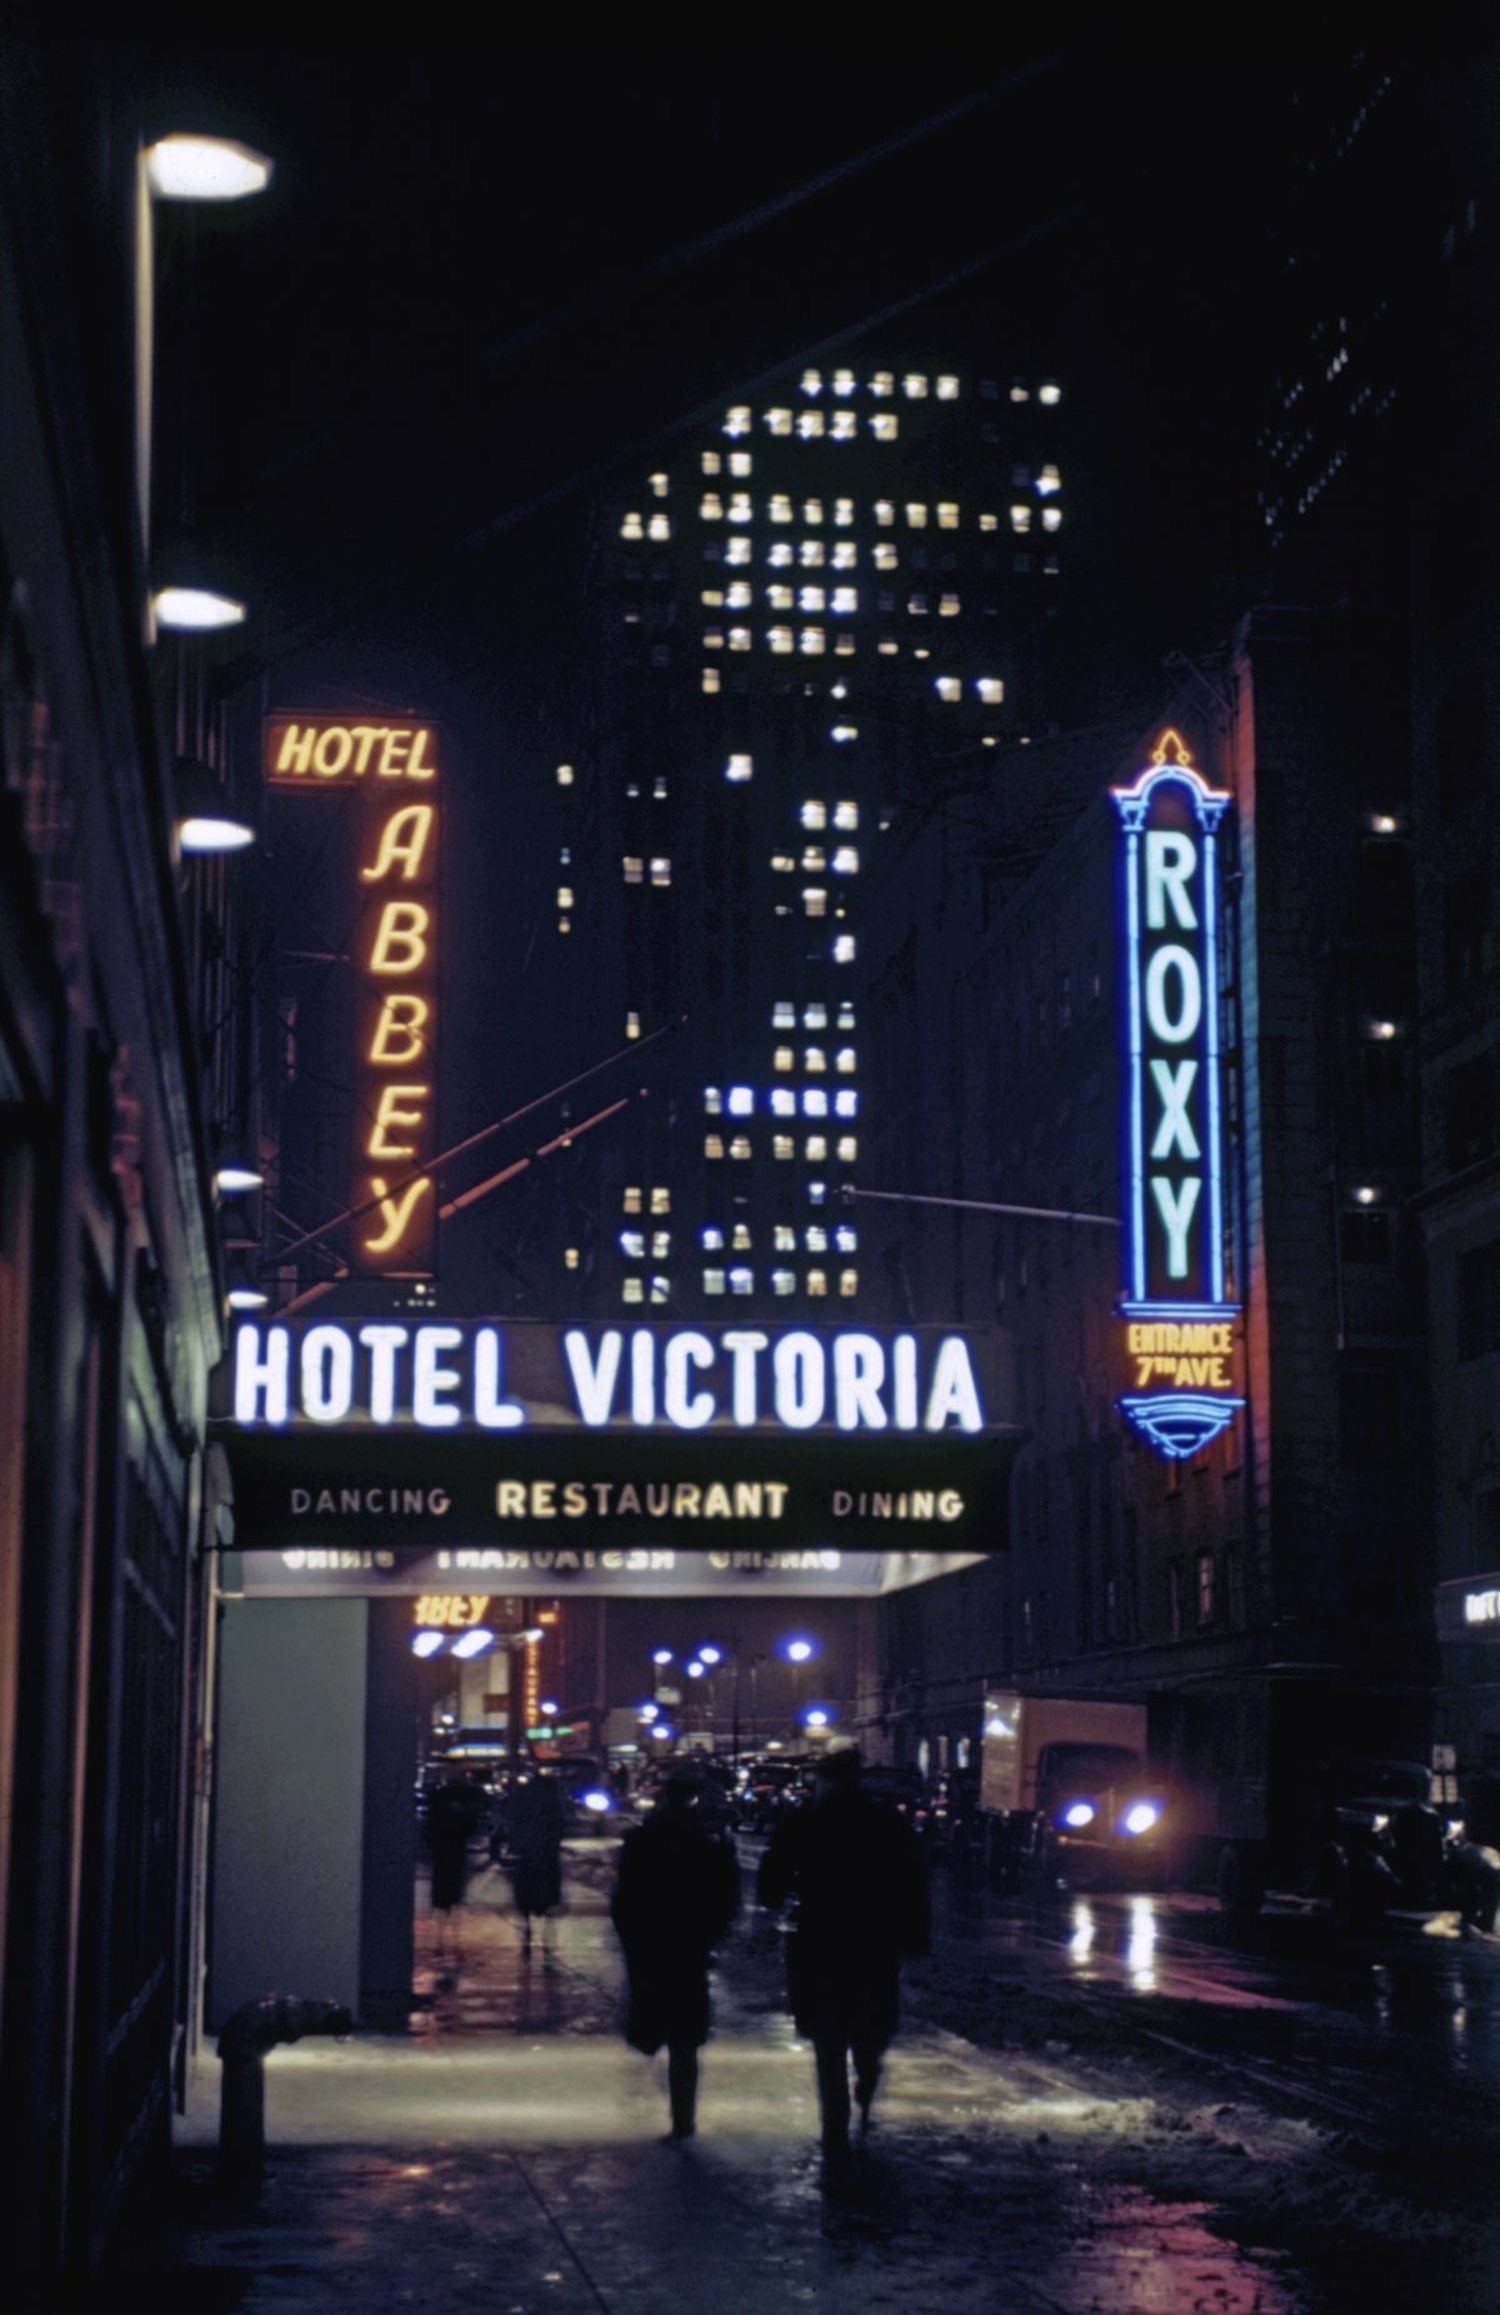 1946 New York street showing the Hotel Abbey, Hotel Victoria and the Roxy in Times Square. In the background is the Rockefeller Center.